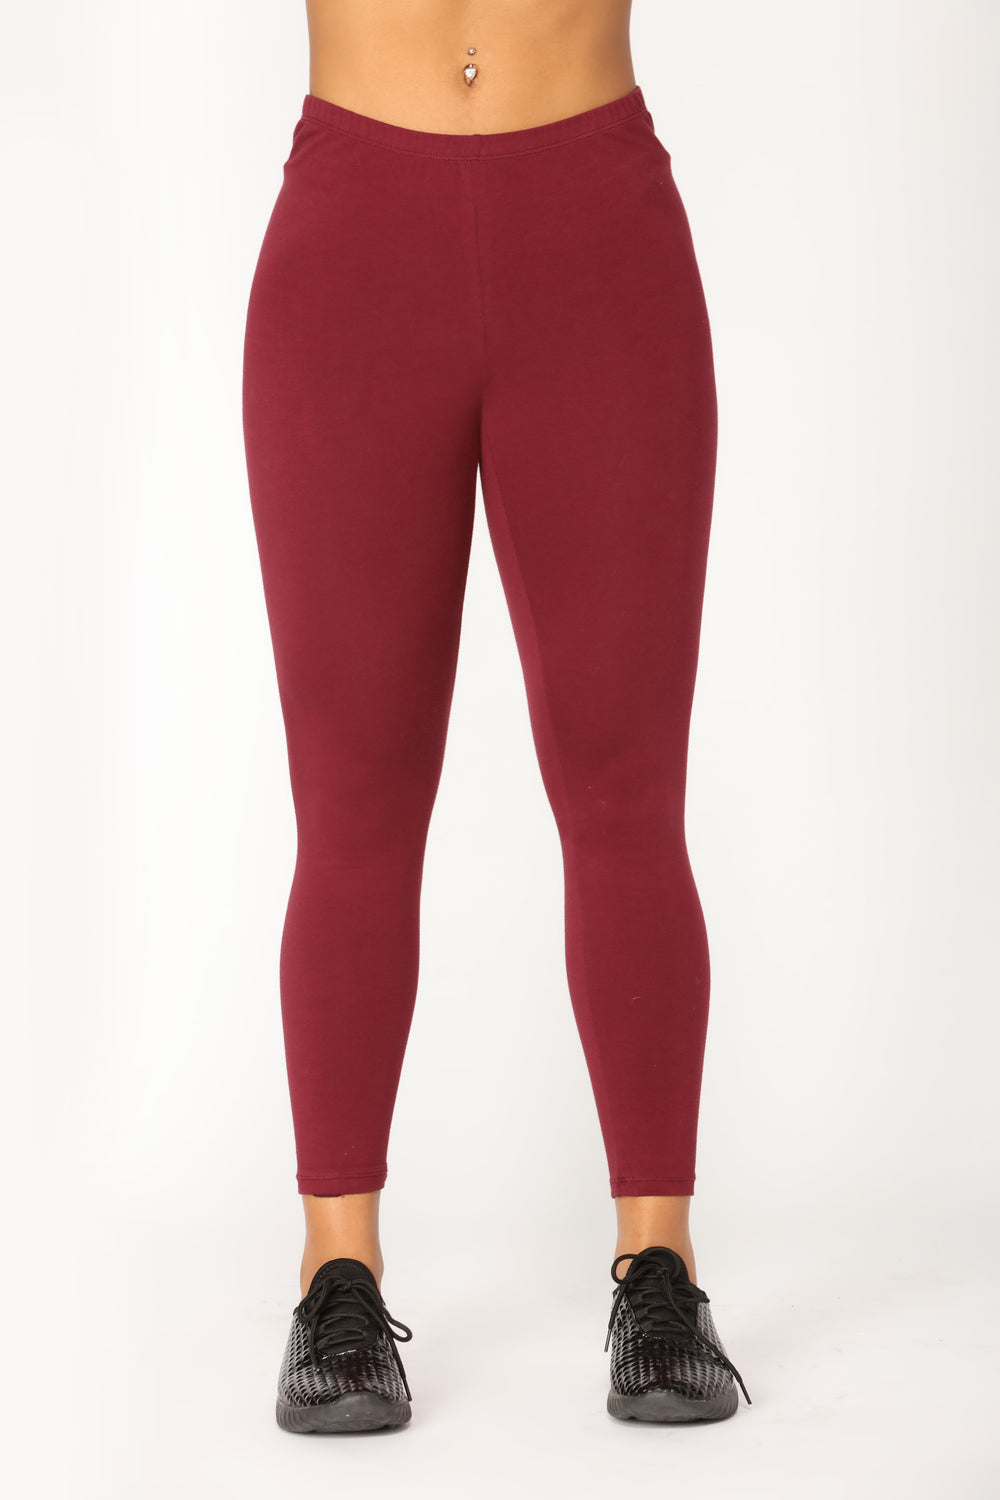 Almost Daily Layering Leggings - Burgundy